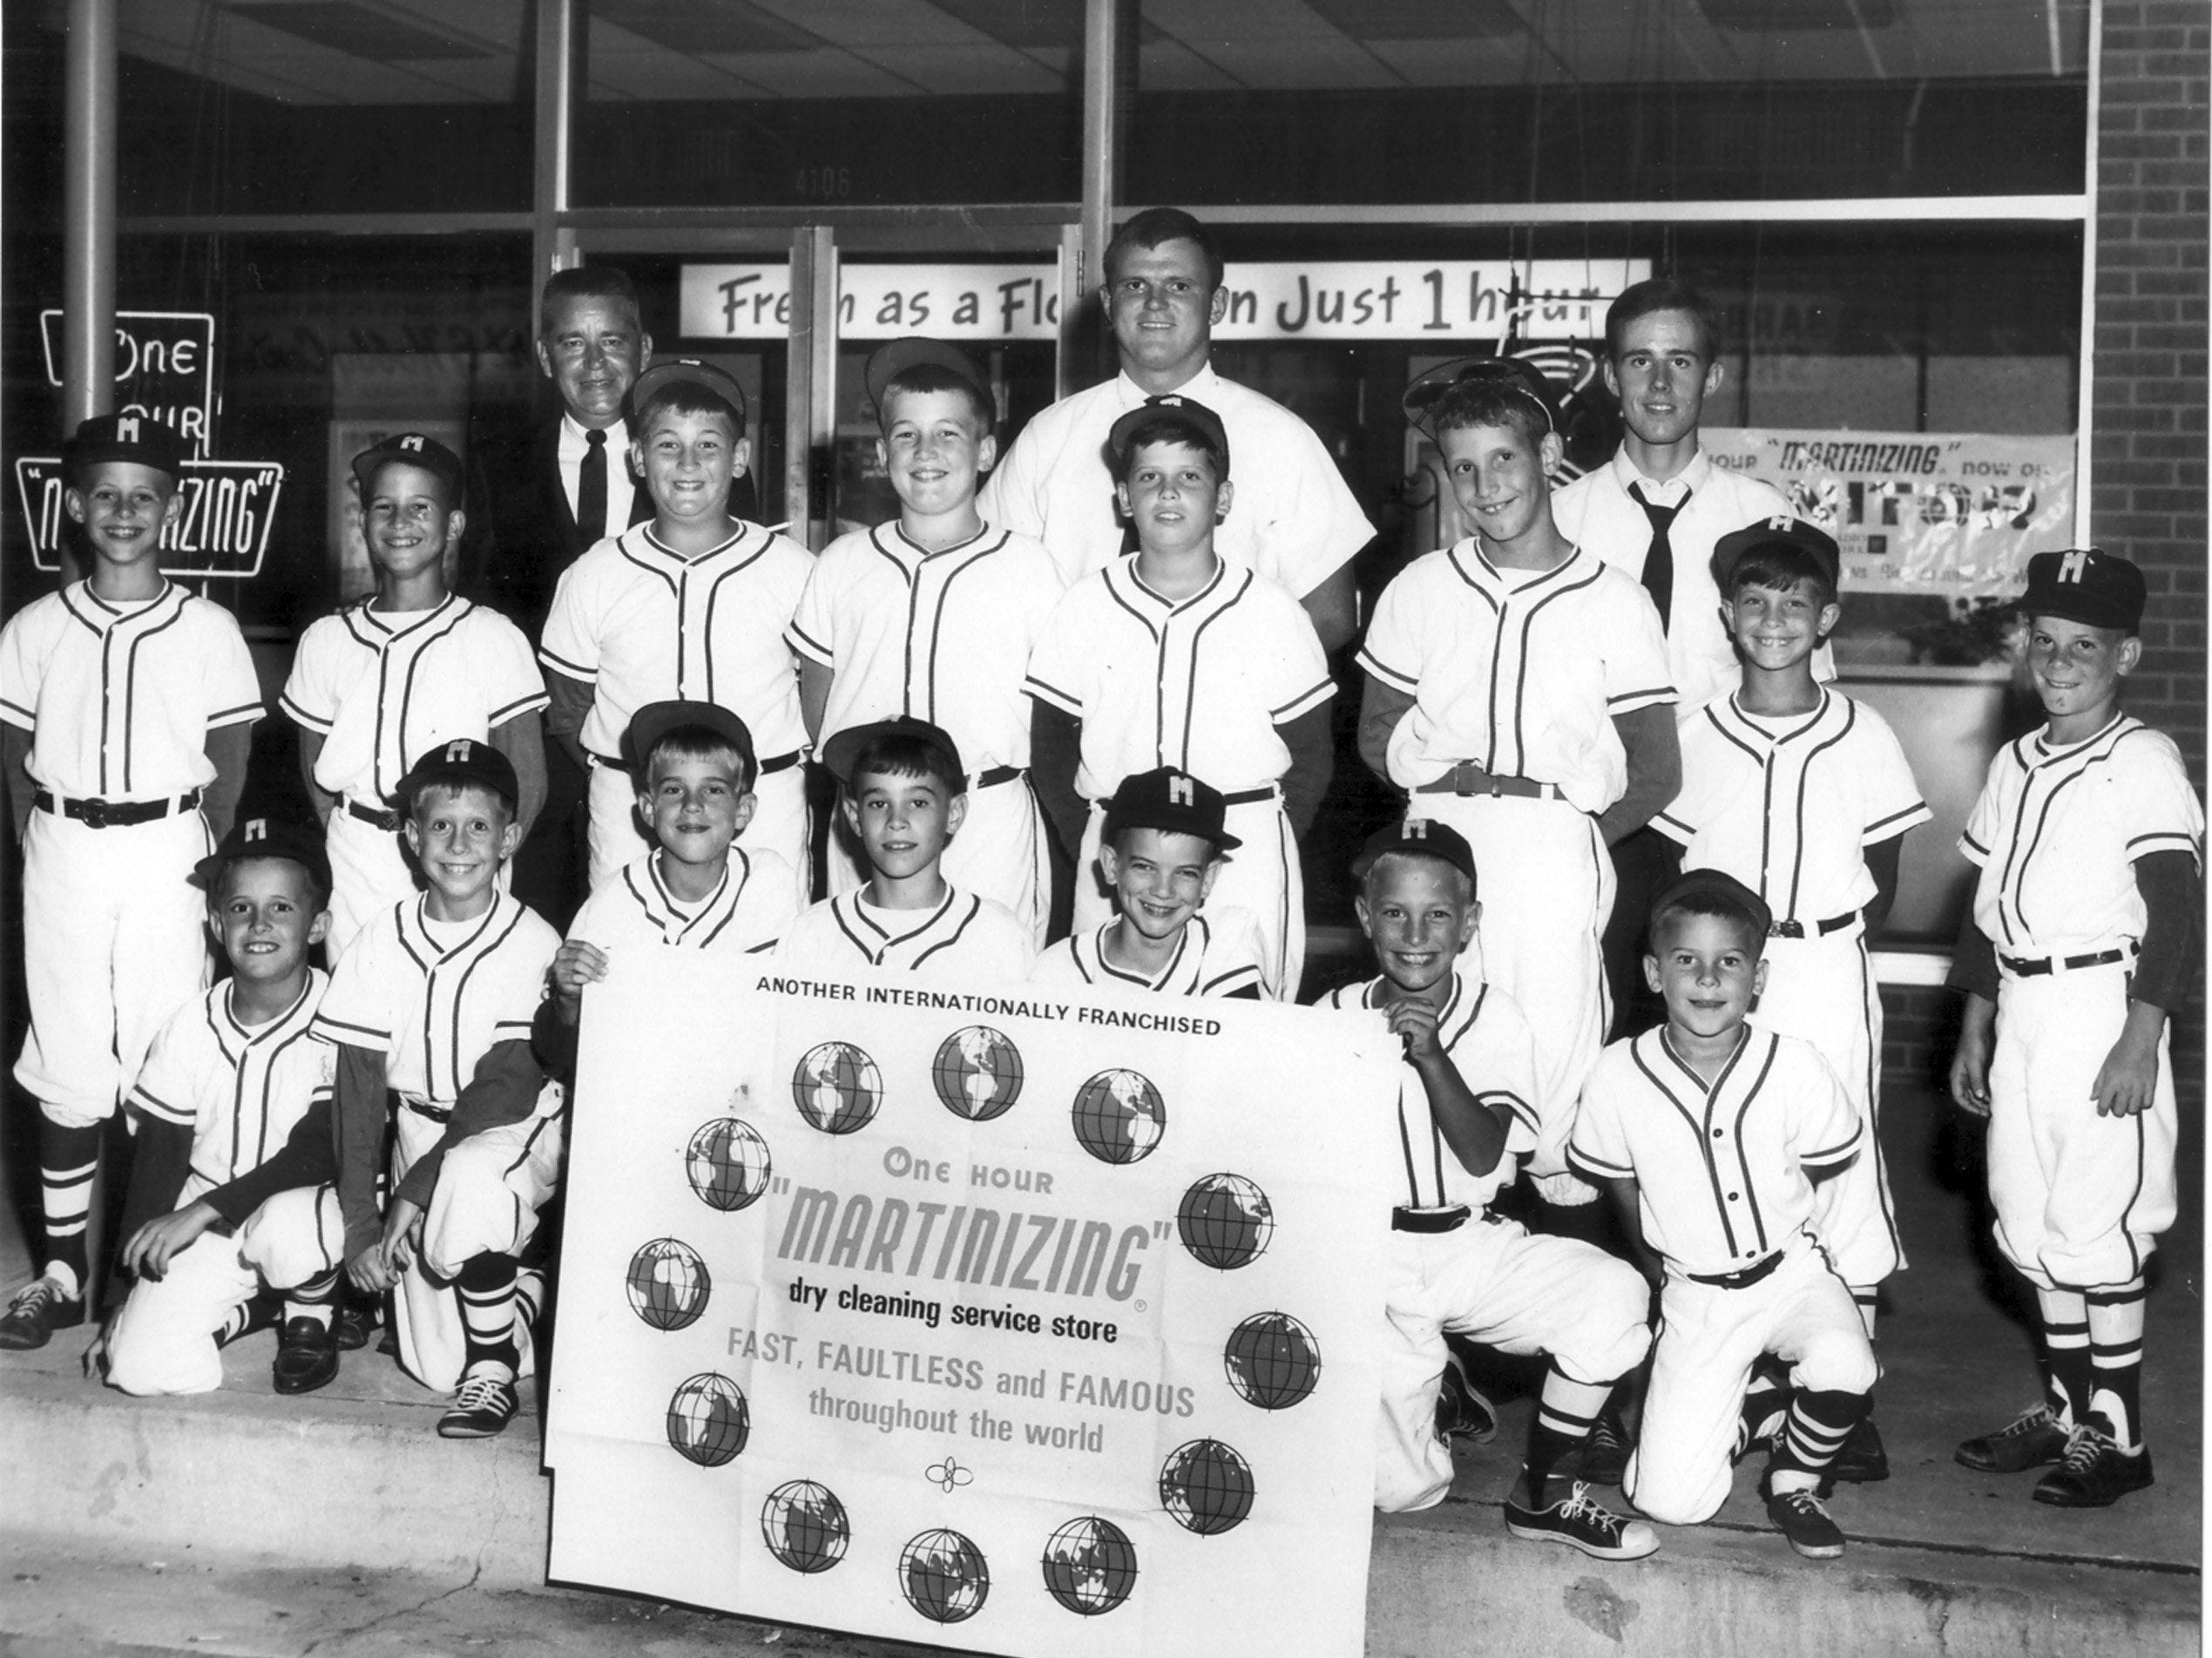 In the summer of 1963, Steve Jourdan (back row, right) coached his first baseball team at age 16 in the Whitehaven Baseball Association. During his coaching career, his teams have won 1,231 games and lost only 439. He coaches football, basketball and baseball at Bishop Byrne High School and this summer will coach the 18-year-old Memphis Tigers. This first team in 1963 was sponsored by One Hour Martinizing.